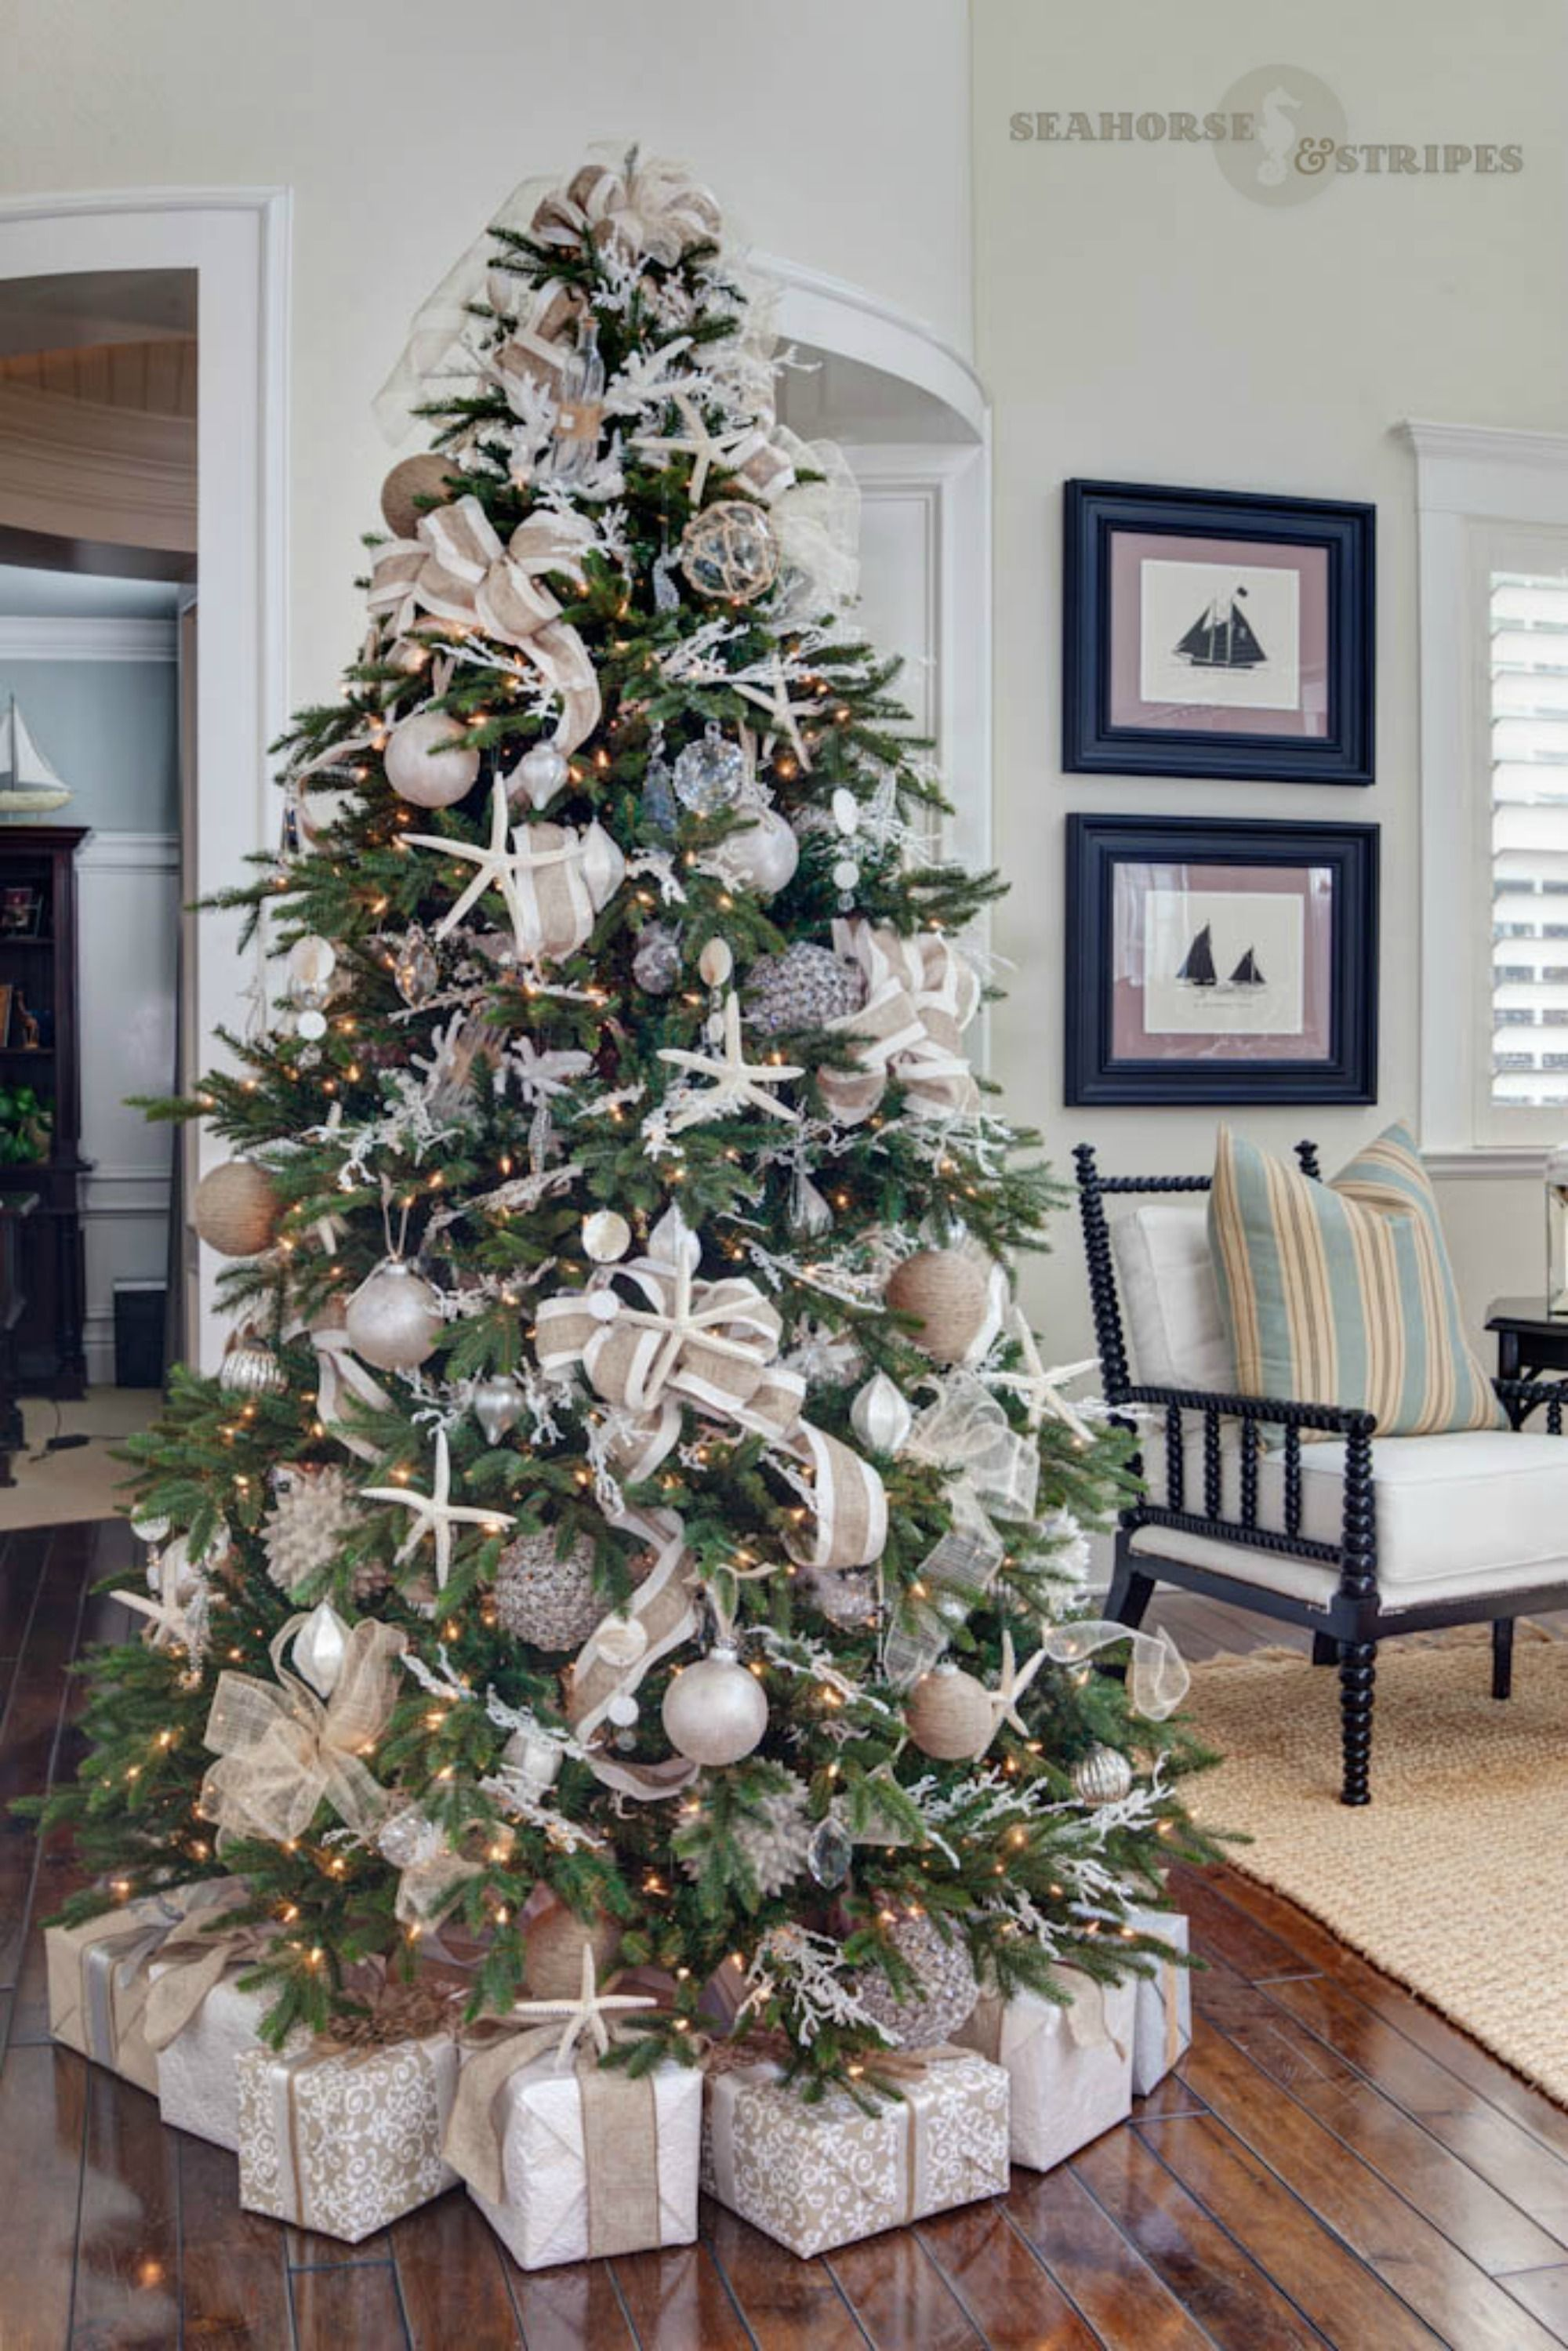 33 Unique Christmas Tree Decoration Ideas Pictures Of Decorated Trees